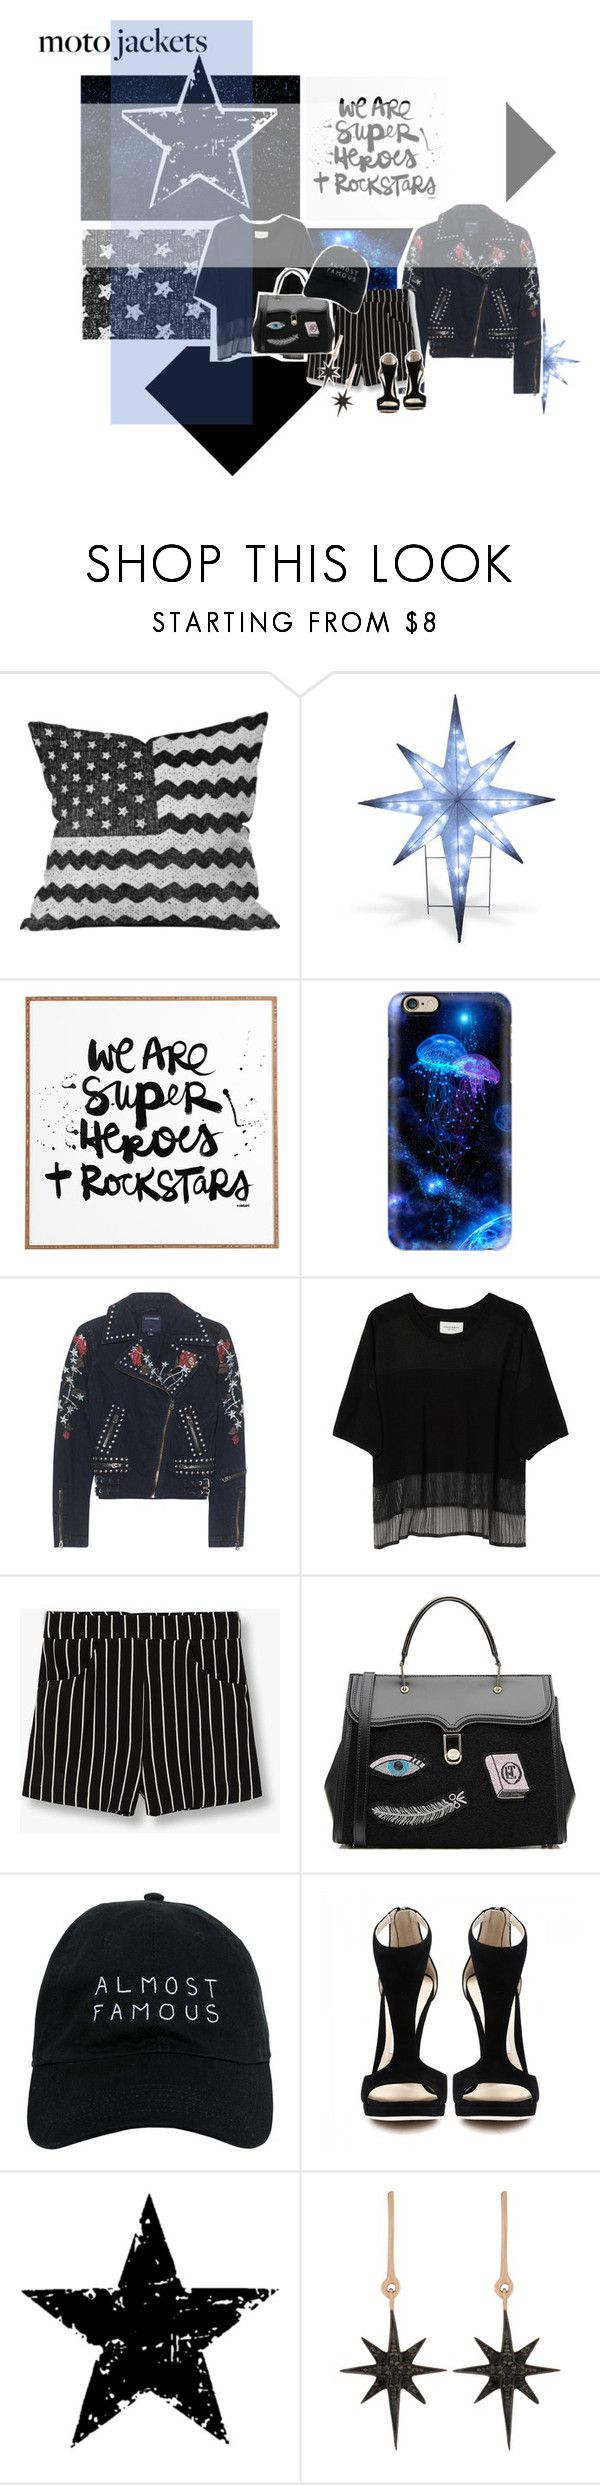 """After Dark: Moto Jackets Contest Entry"" by rose-dujour ❤ liked on Polyvore featuring Dot & Bo, National Tree Company, DENY Designs, Casetify, True Religion, Public School, MANGO, Olympia Le-Tan, Nasaseasons and Tim Holtz"